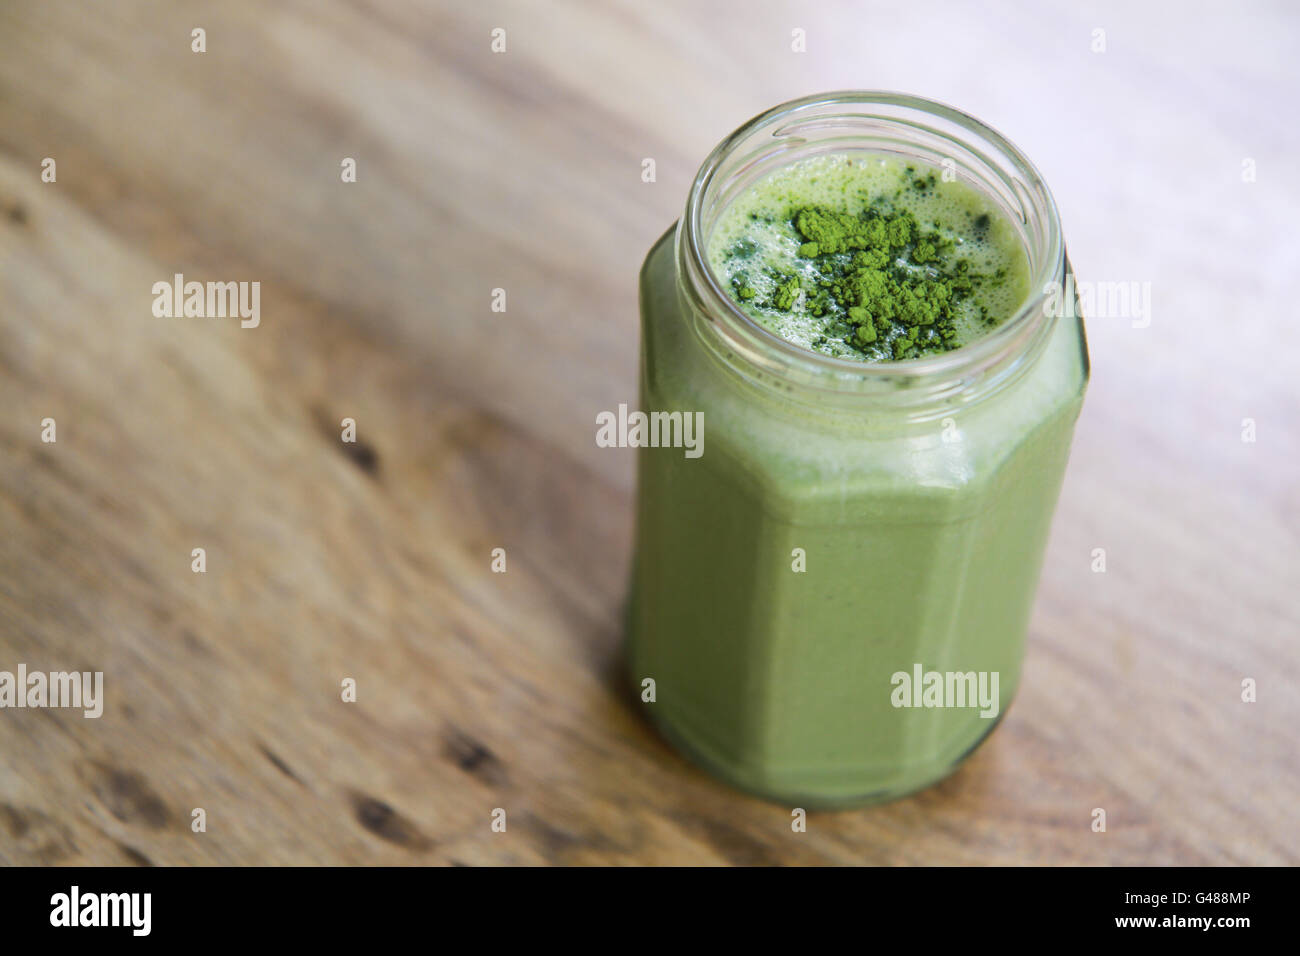 matcha green tea smoothie milkshake in glass jar on table above angle view, horizontal orientation - Stock Image